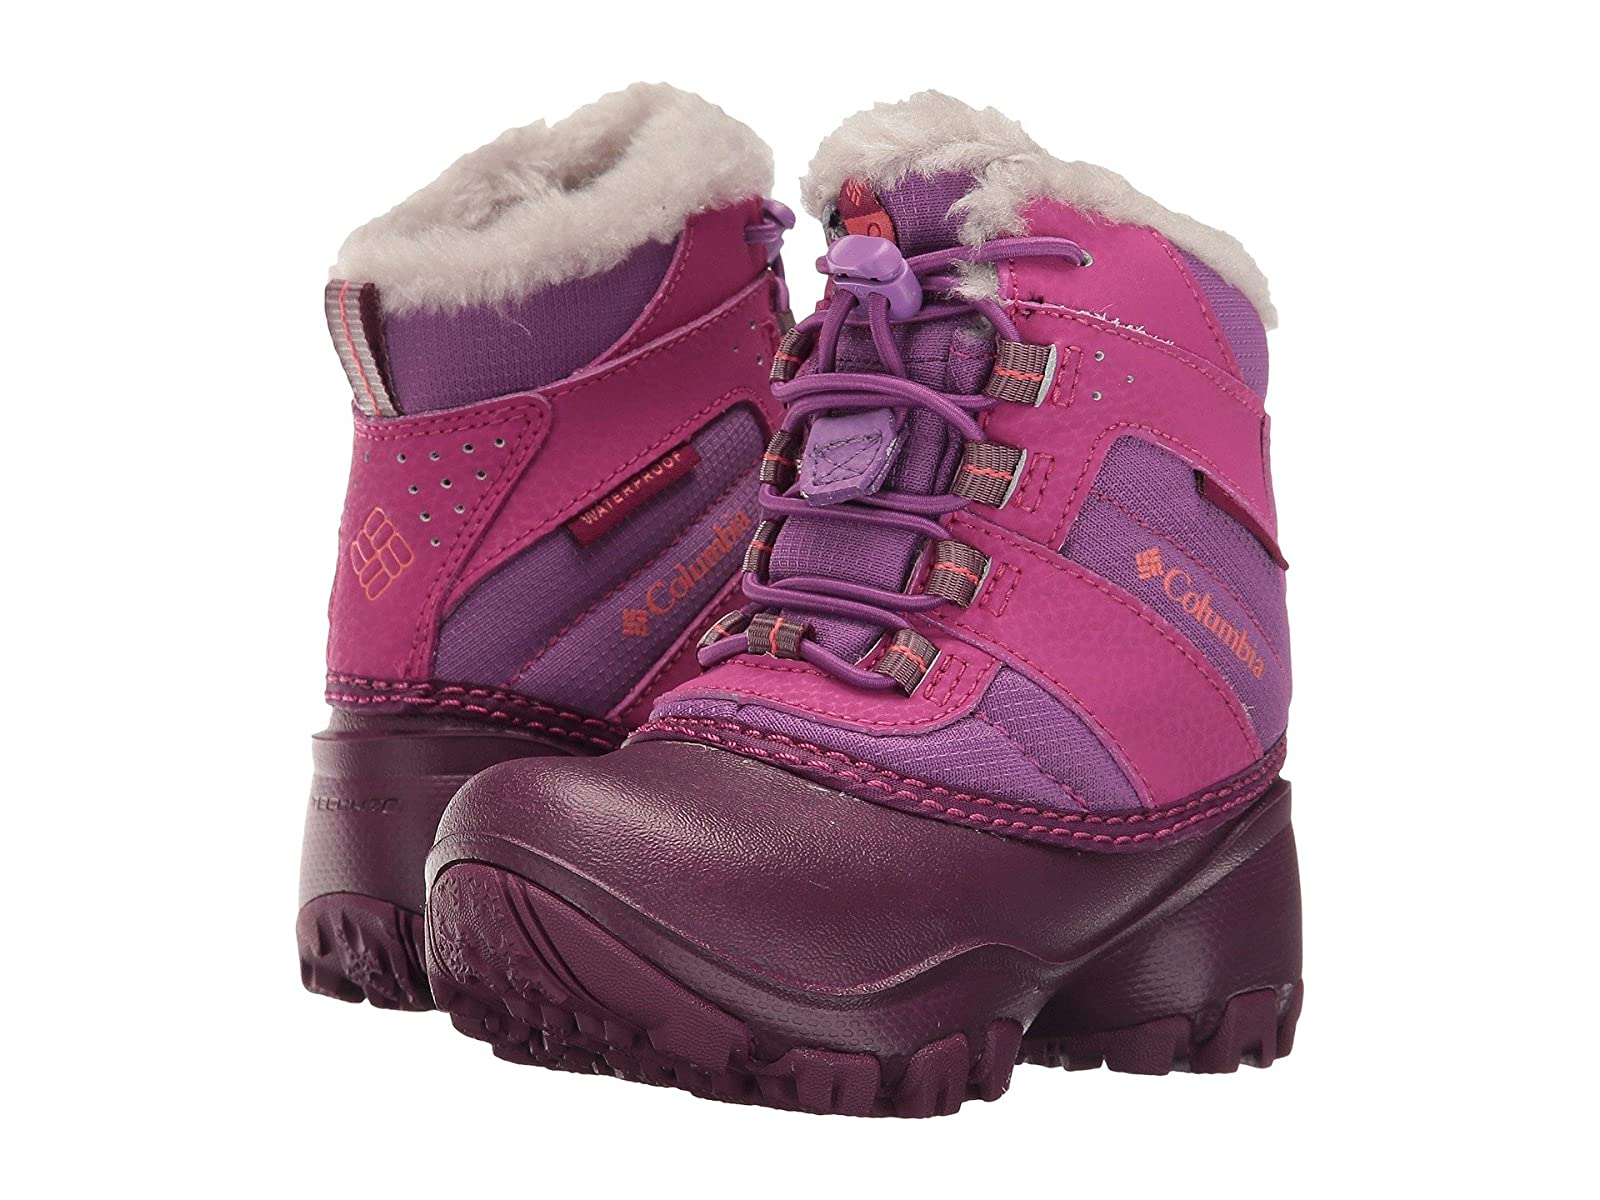 Columbia Kids Rope Tow™ III Waterproof (Toddler/Little Kid/Big Kid)Cheap and distinctive eye-catching shoes